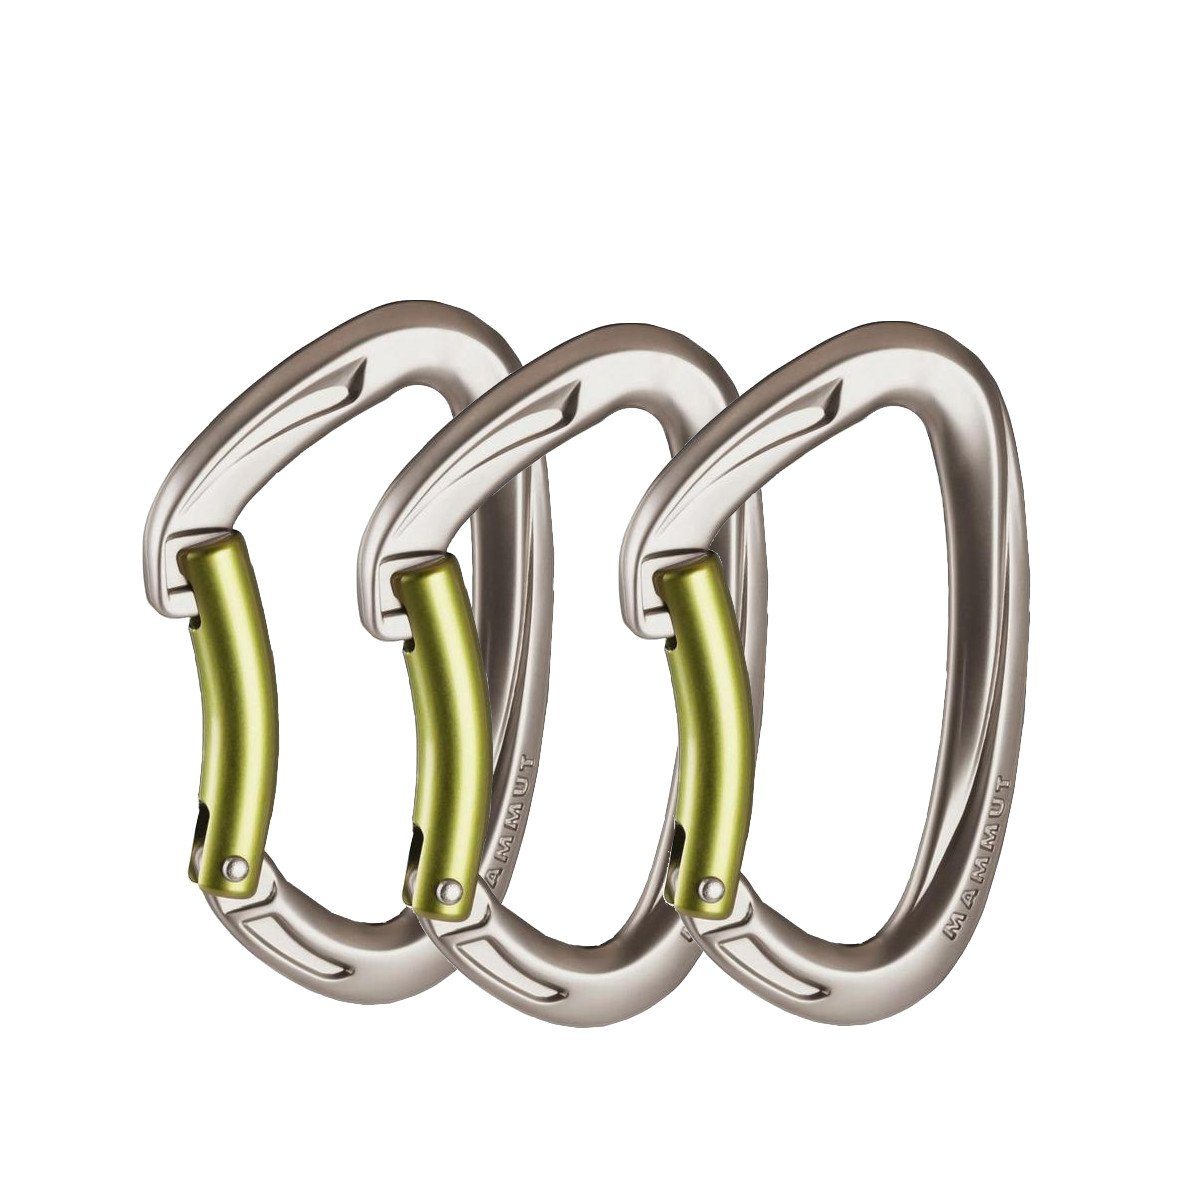 3 Mammut Crag Keylock Bent gate carabiners, shown side by side in silver colour with green gates